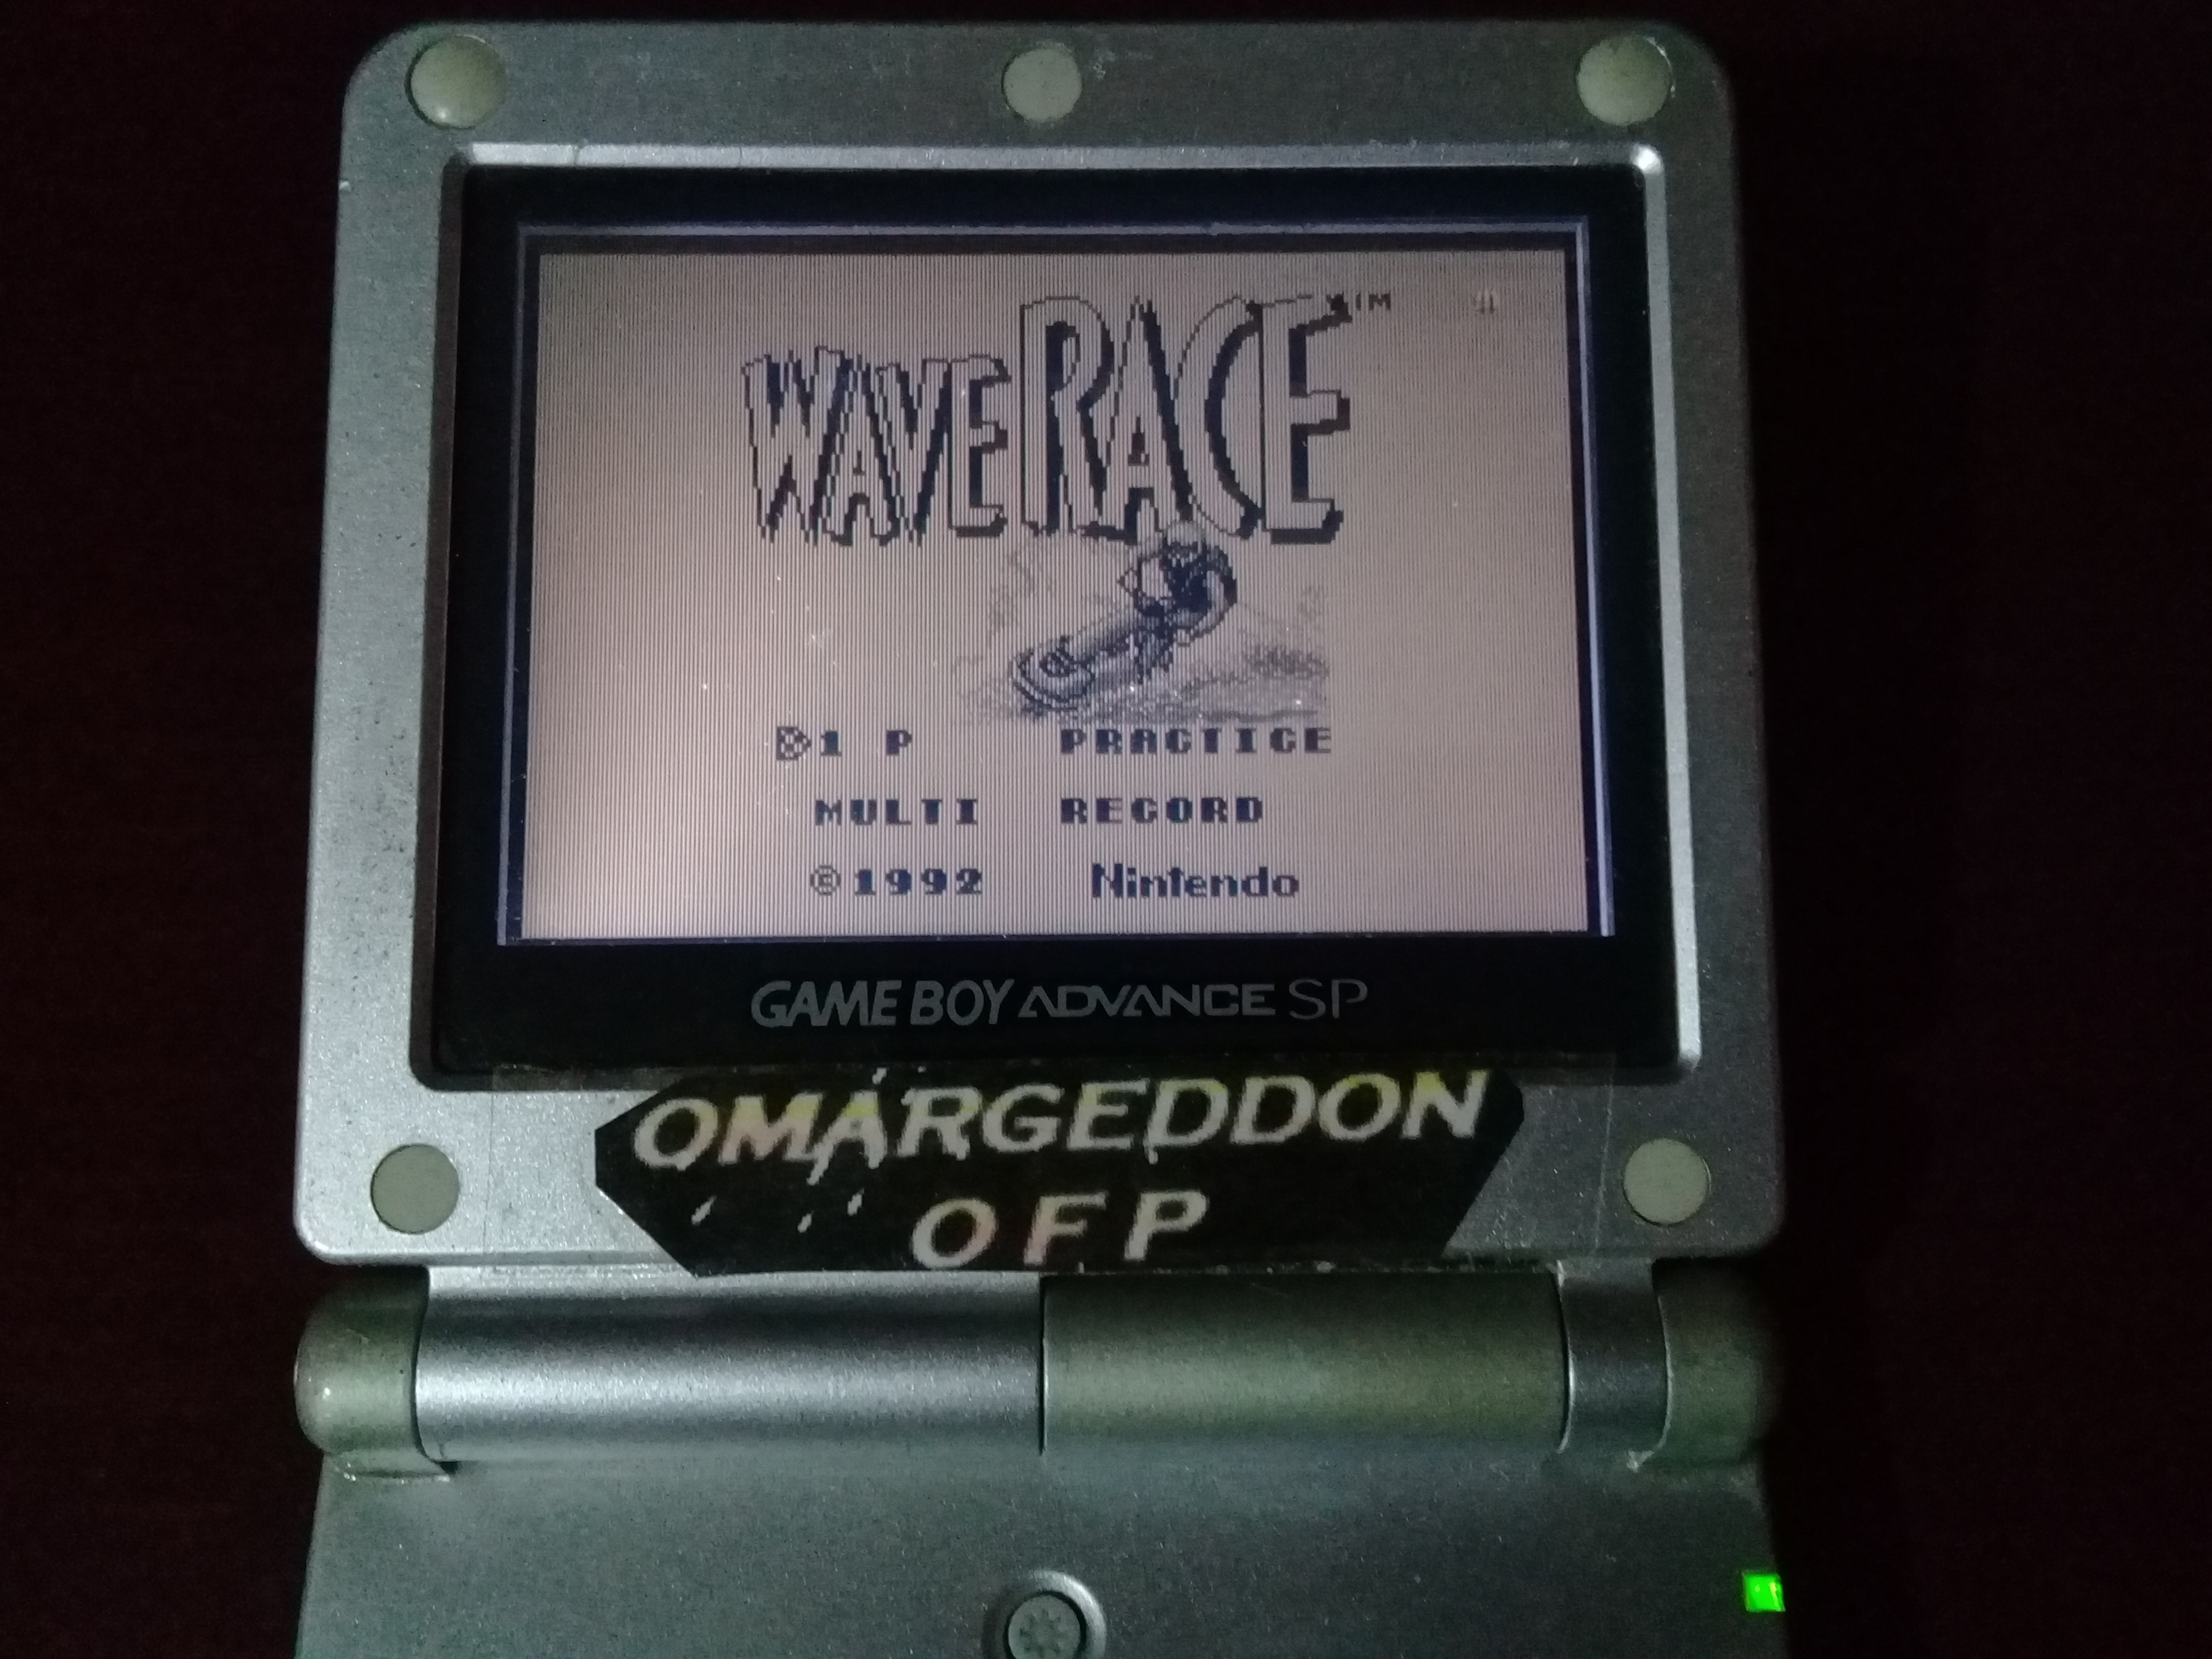 omargeddon: Wave Race: Circuit 3: Corsica [550cc][Course Record] (Game Boy) 0:00:21.2 points on 2019-04-16 14:37:36